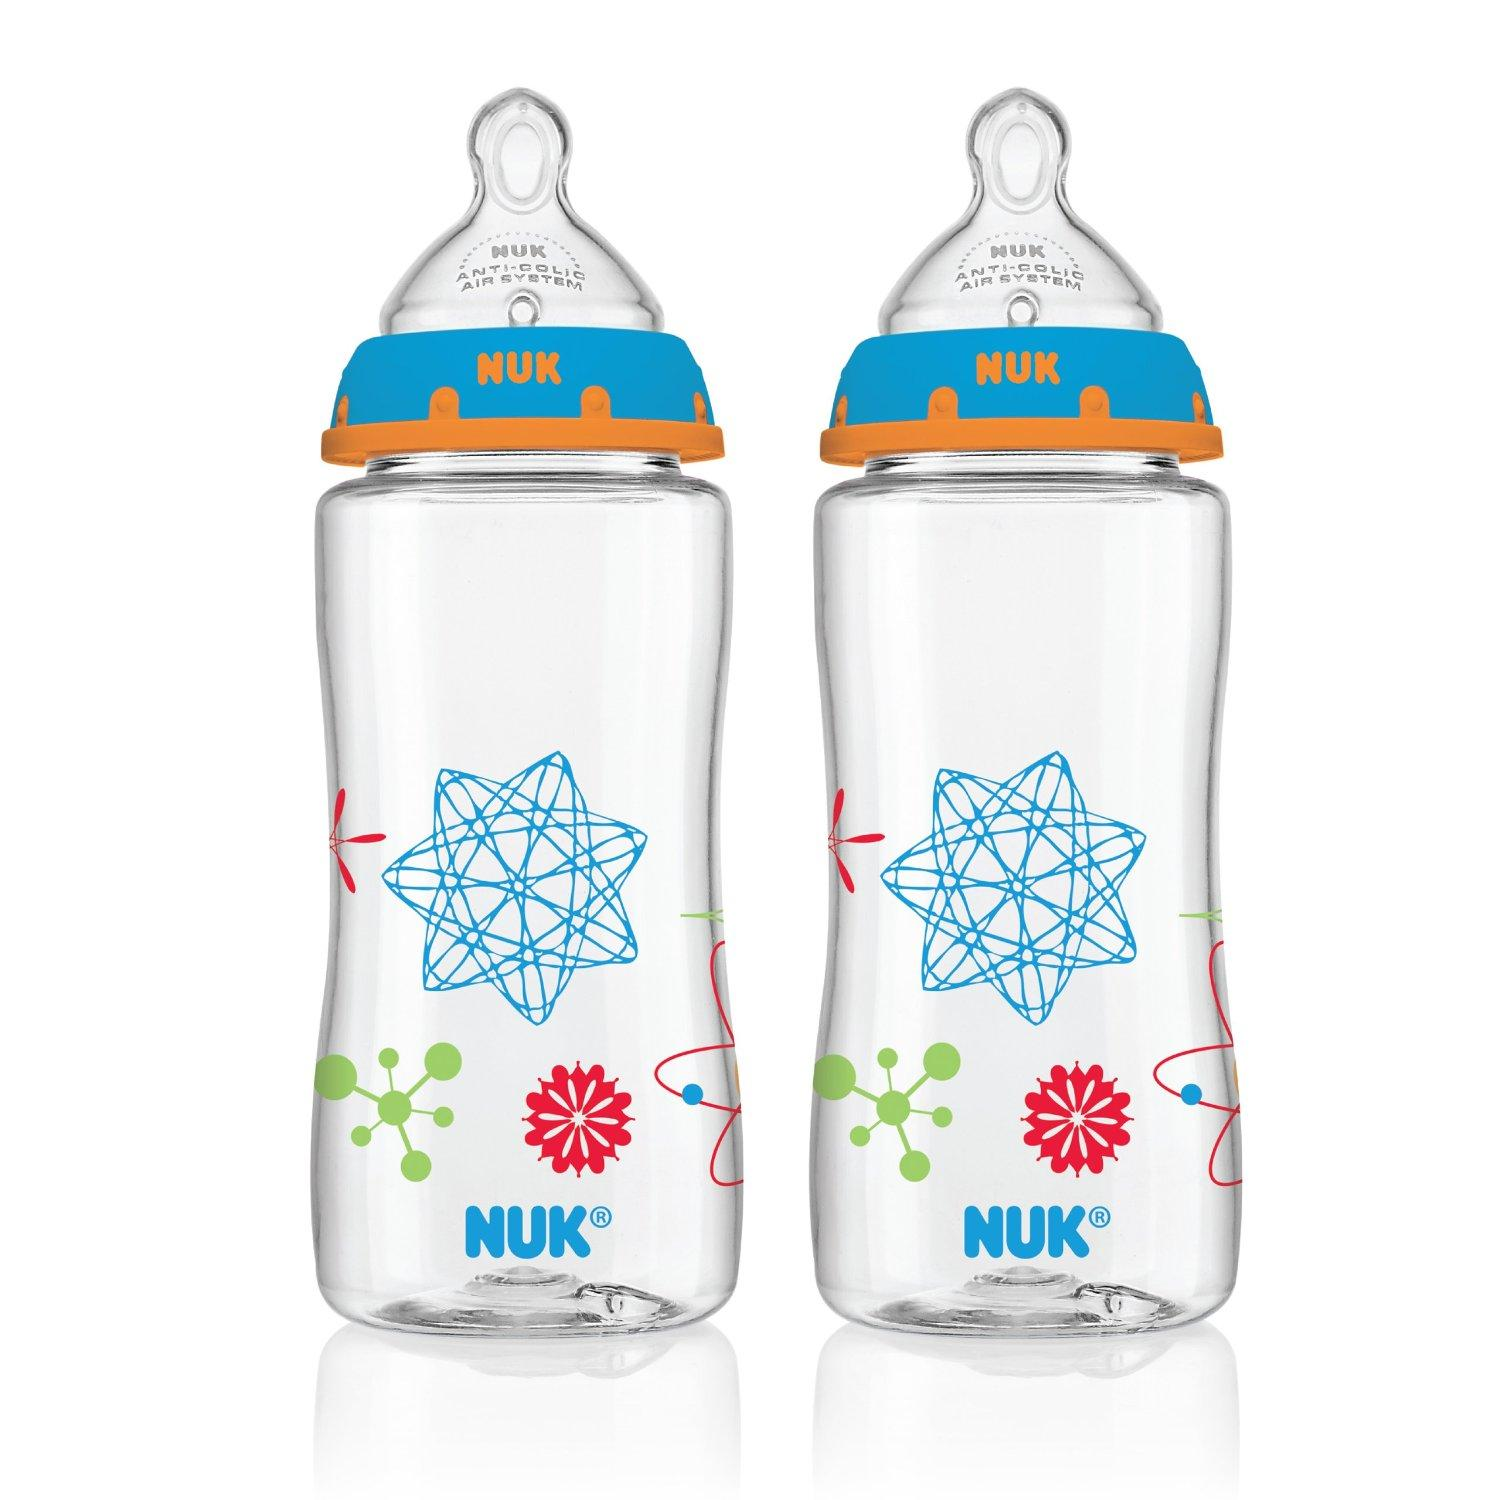 $6.18 NUK Advanced Orthodontic Bottle in Boy Colors, 10-Ounce, 2 Count